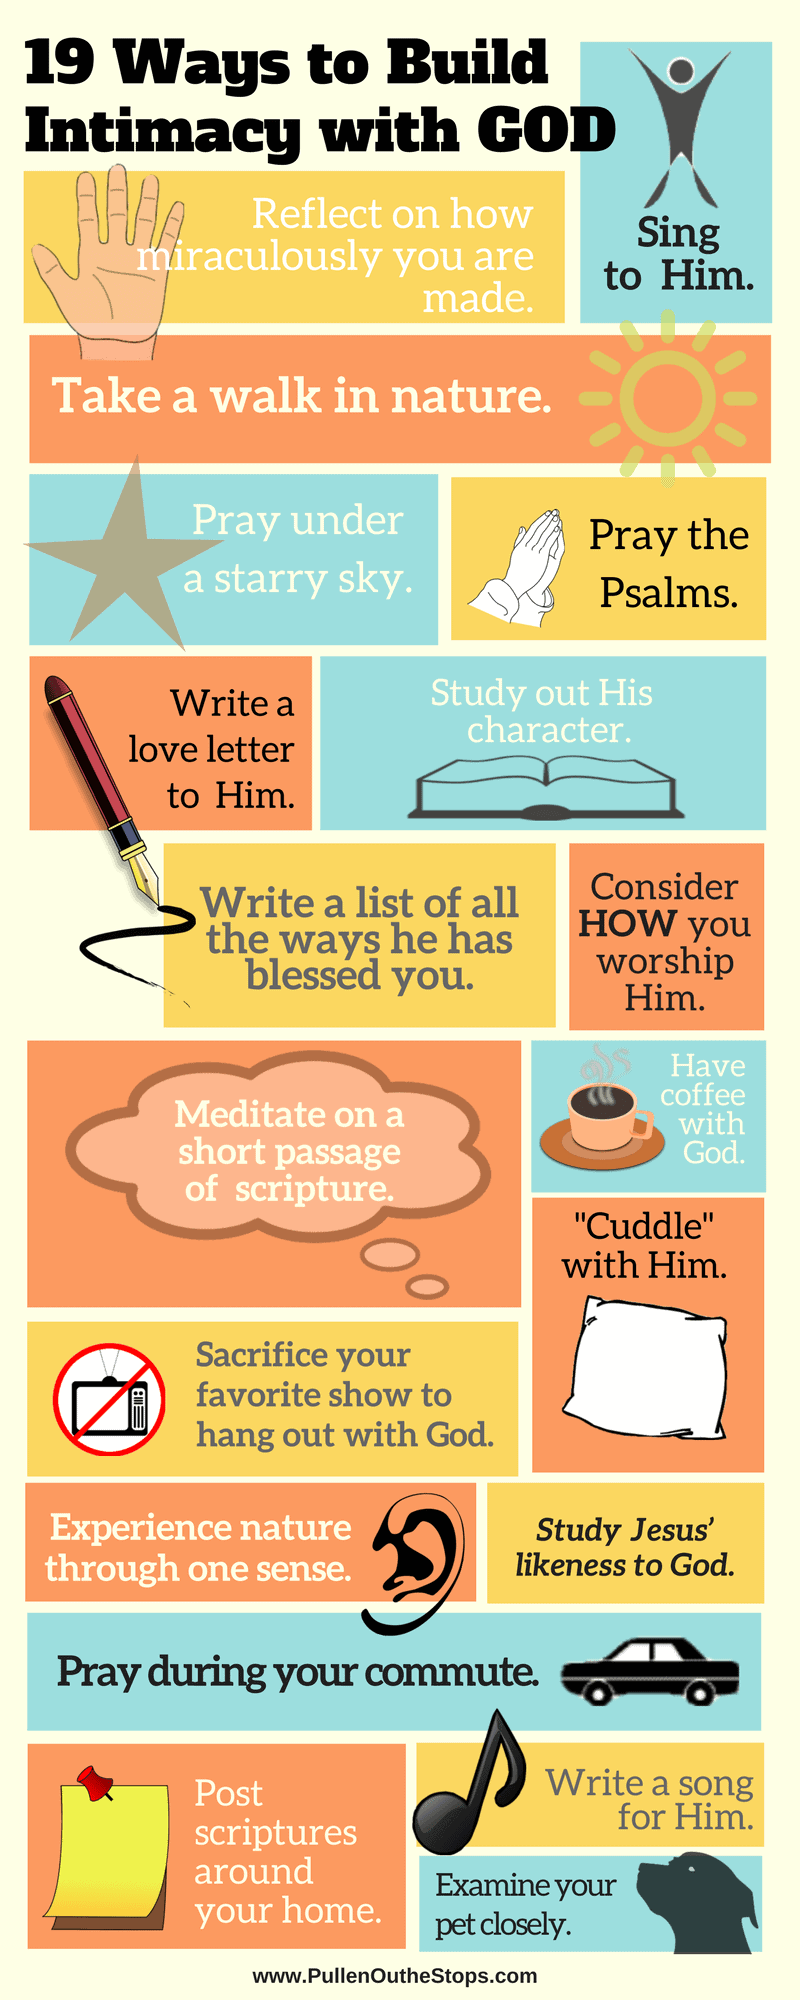 19 Ways with God Infographic